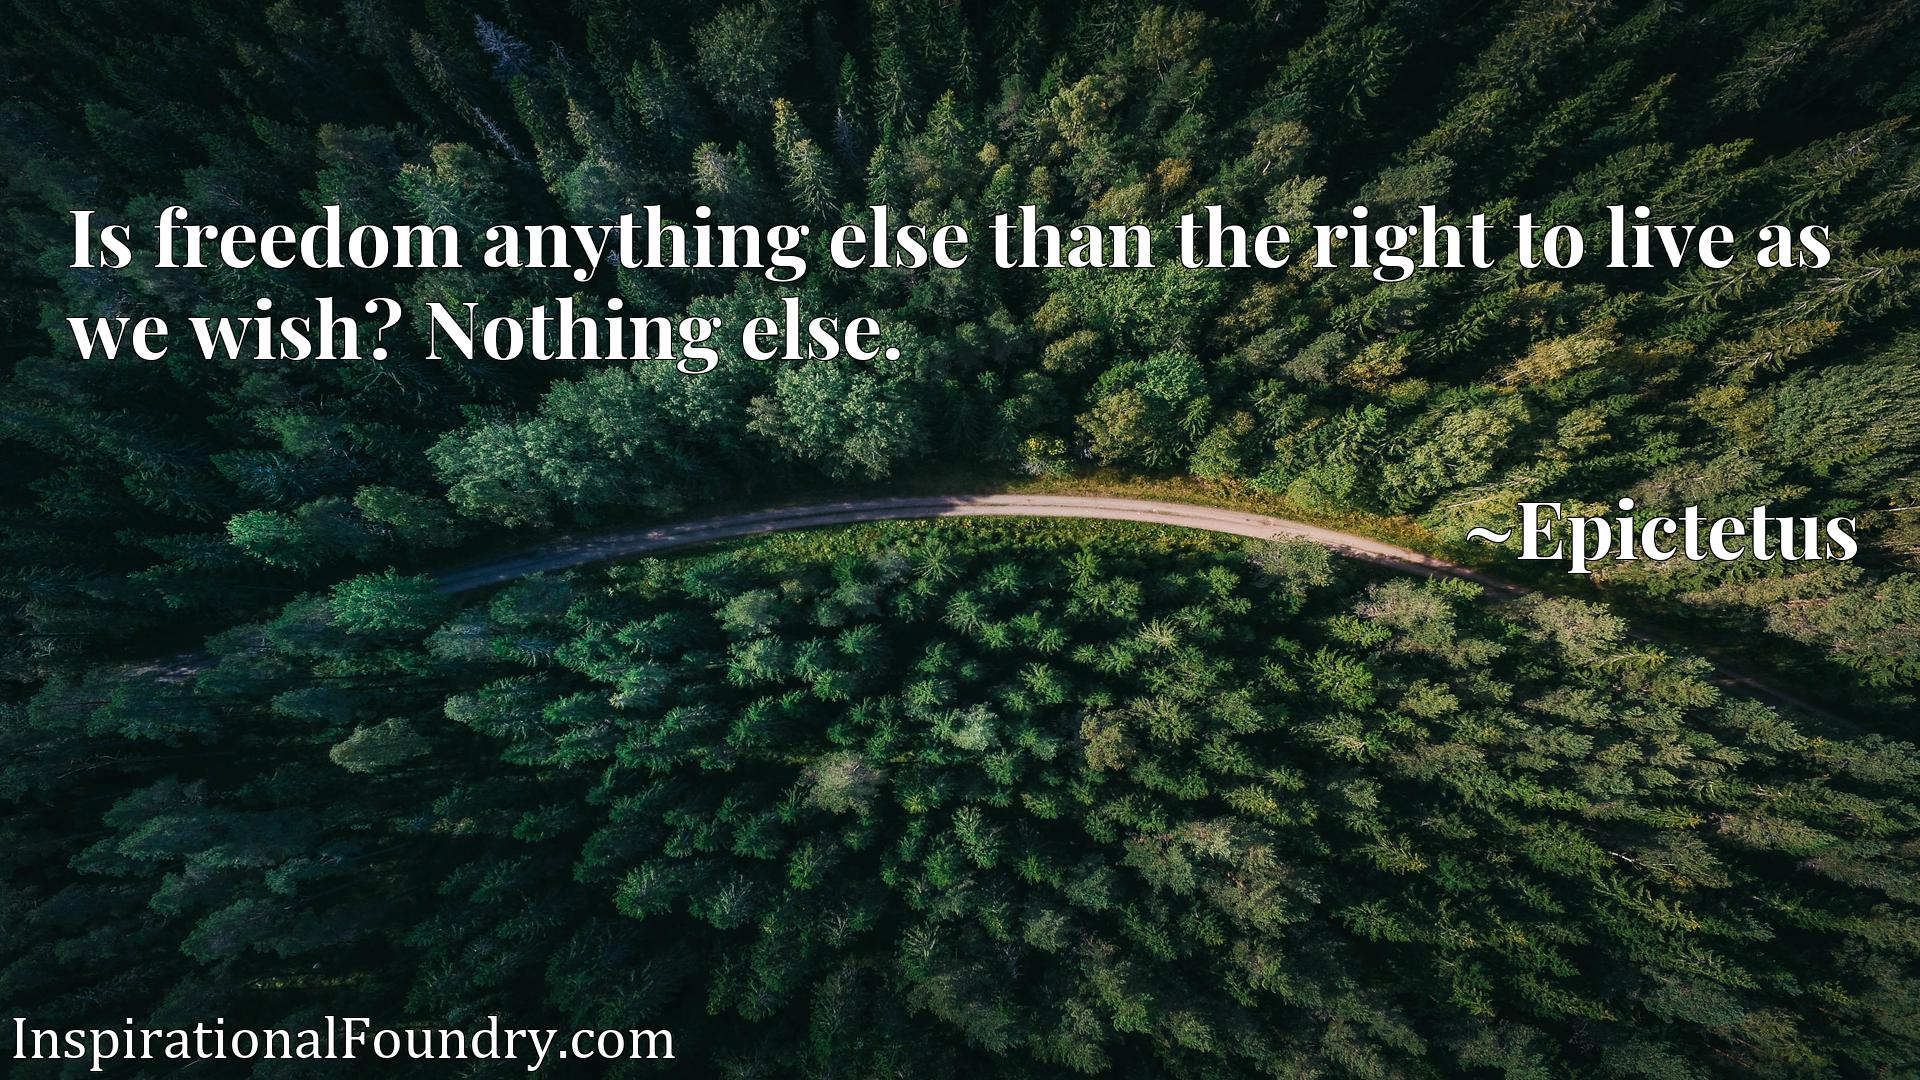 Is freedom anything else than the right to live as we wish? Nothing else.